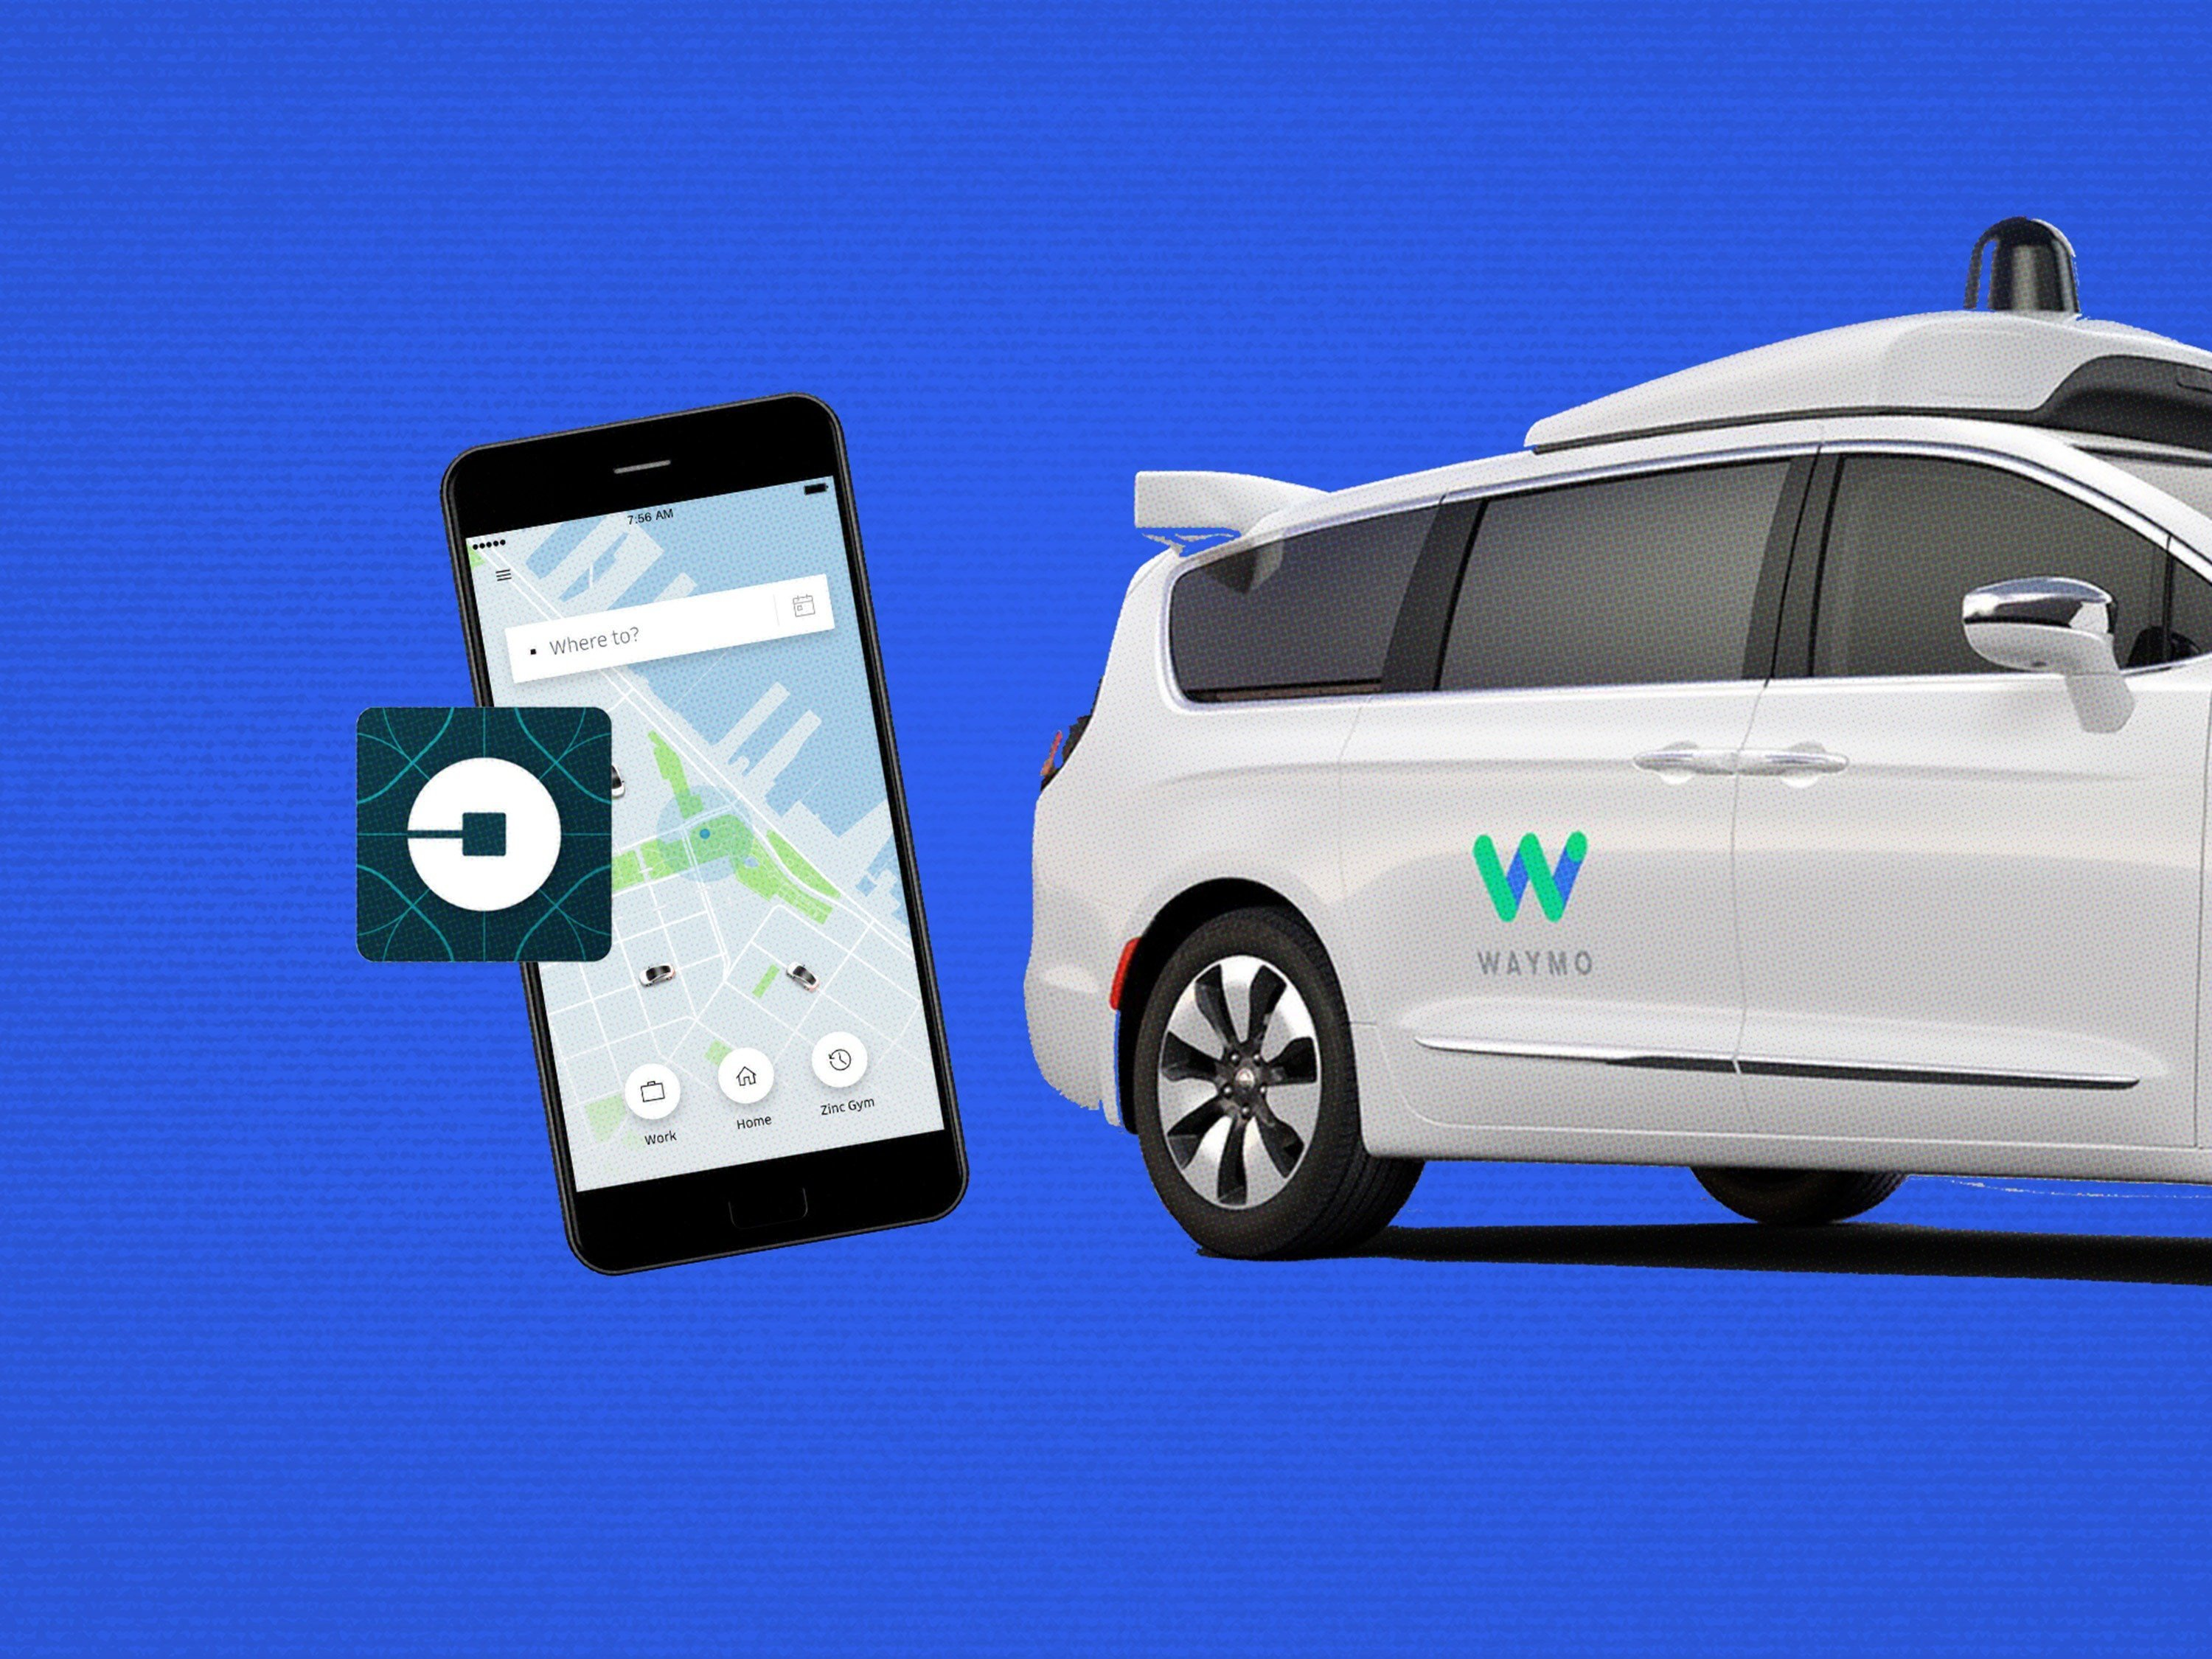 Waymo, which was Google's self-driving car program, had alleged its former engineer Anthony Levandowski downloaded autonomous vehicle trade secrets and took them to Uber.